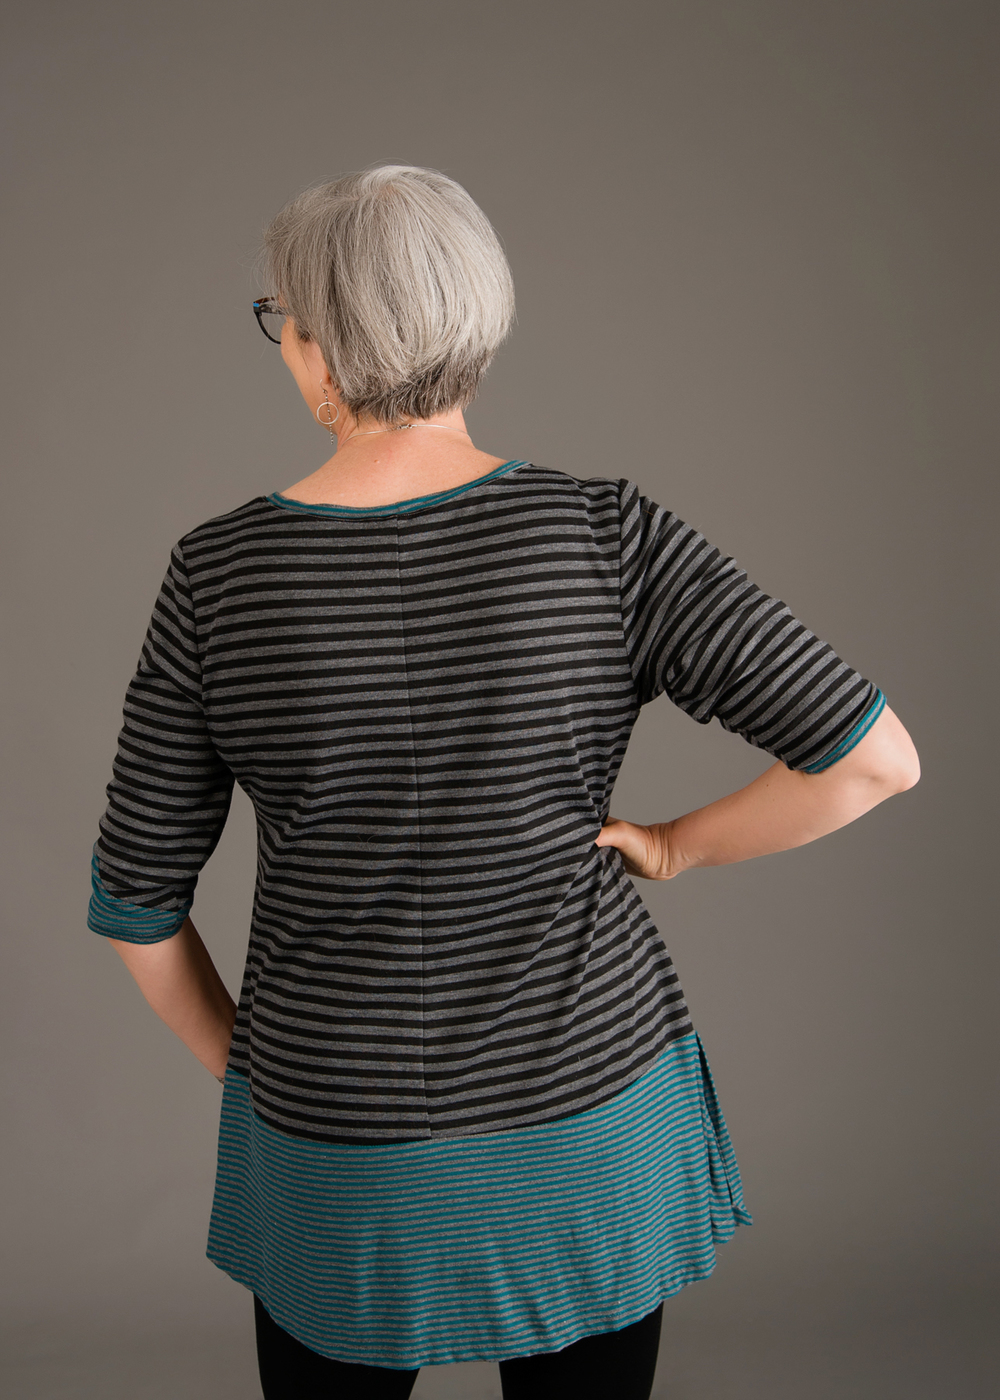 Back of Ivy Tunic. Photo by Andrea Jones.